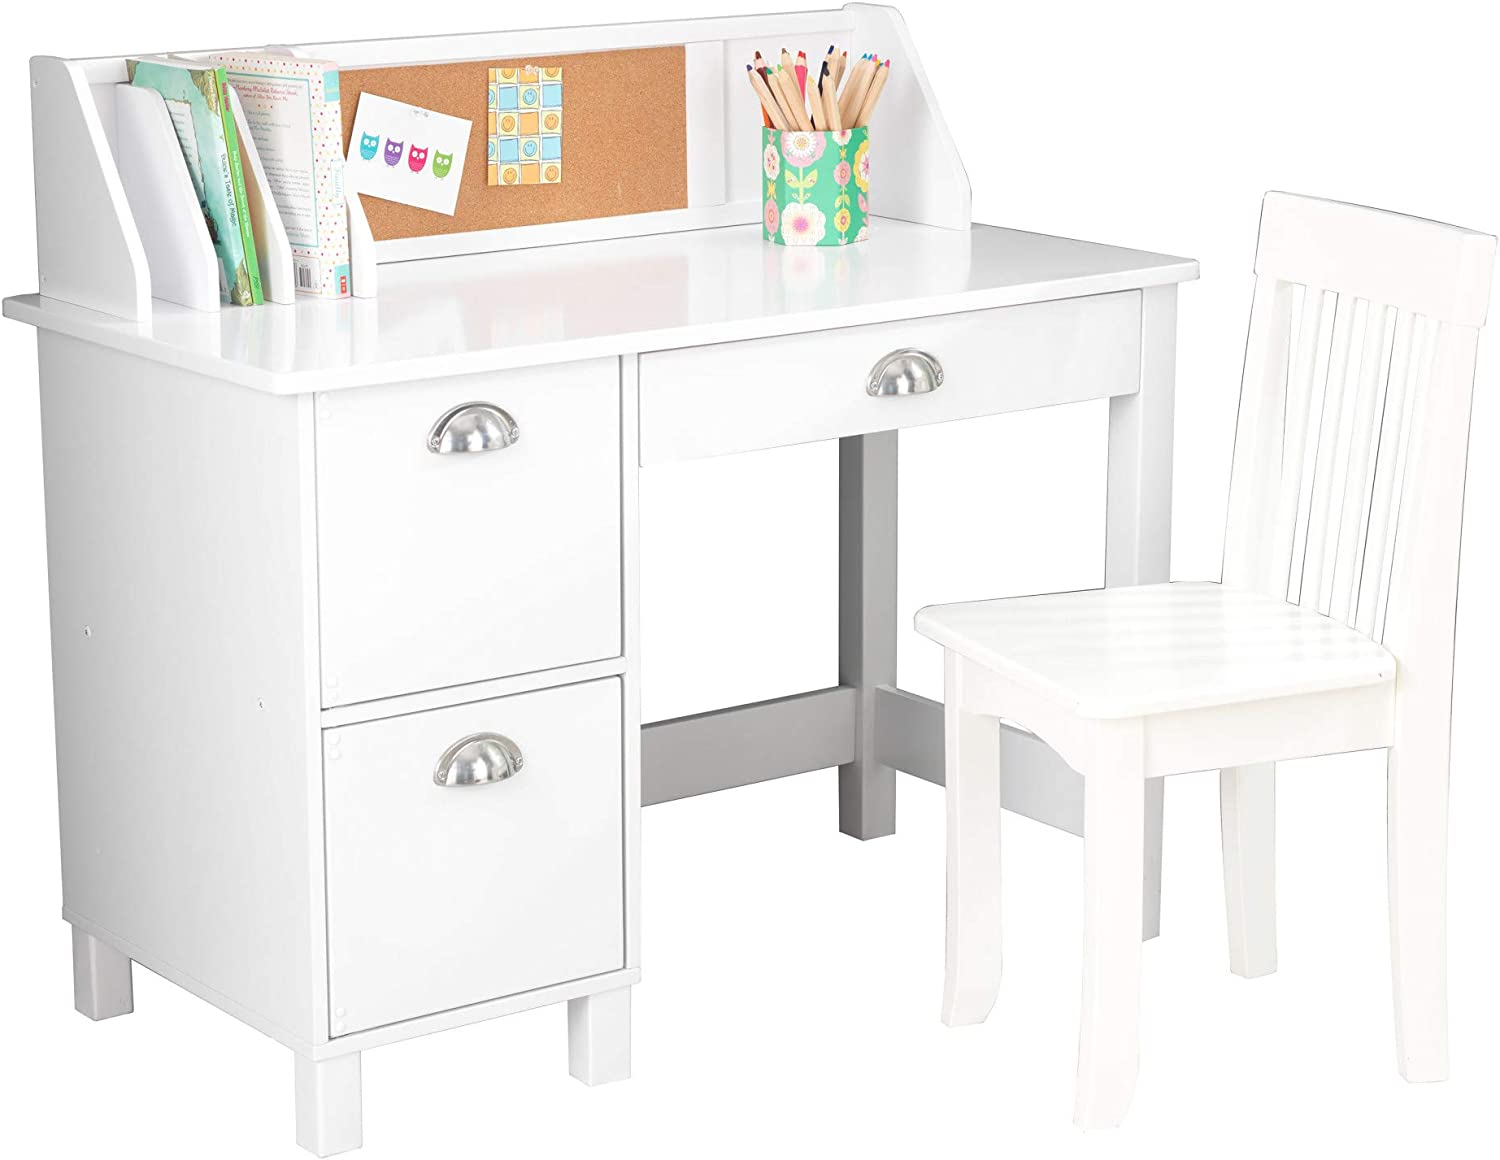 Kidkraft Wooden Study Desk For Children With Chair Bulletin Board And Cabinets Gift For Ages 5 10 White Toys Games